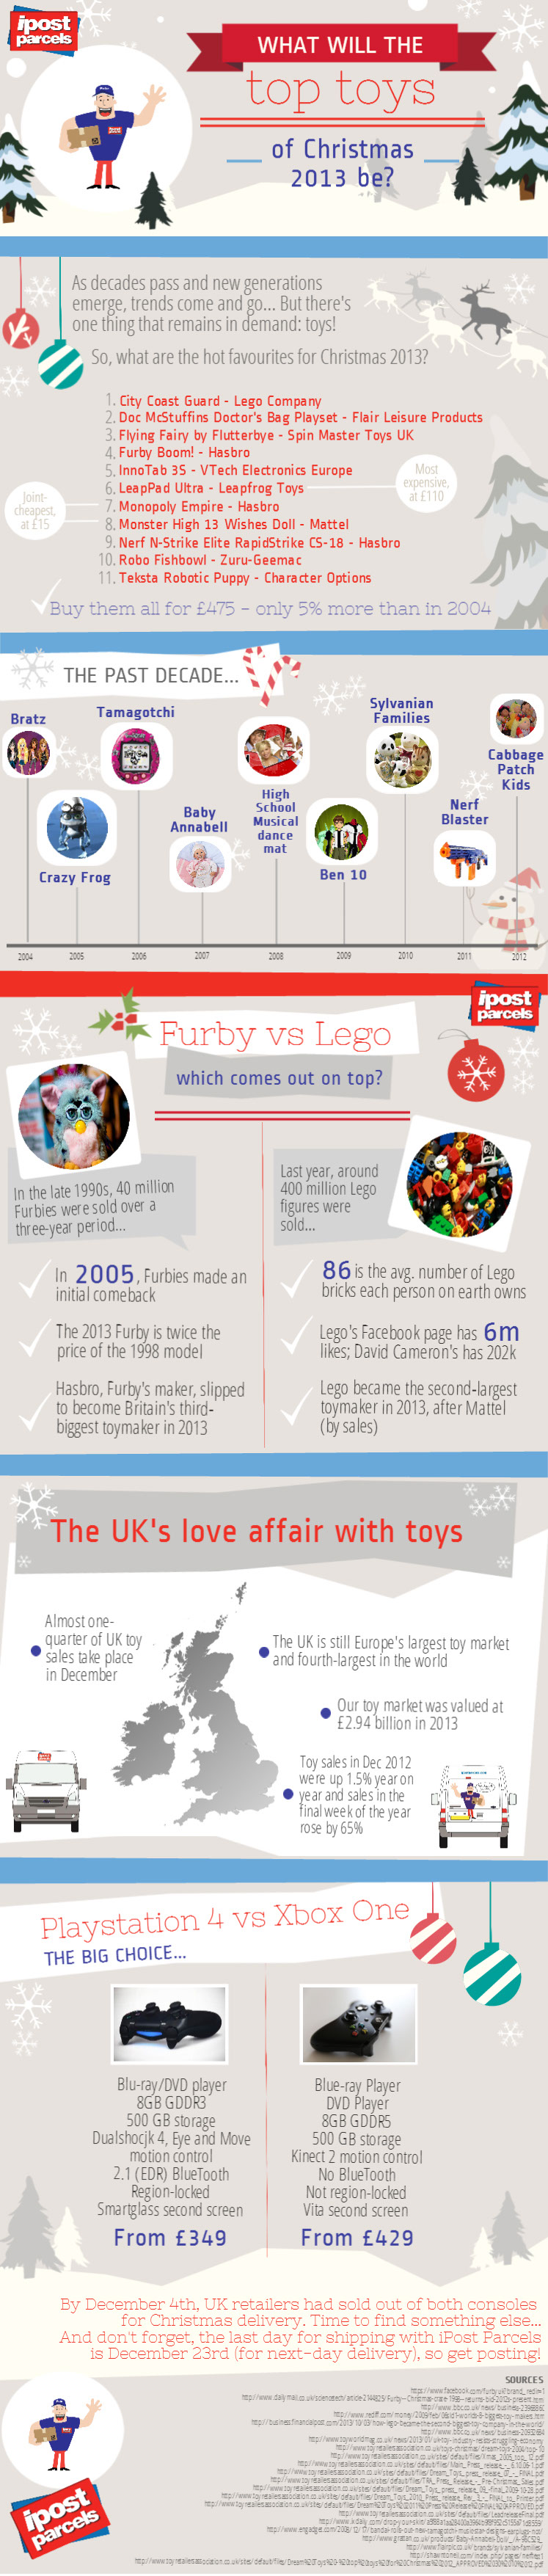 Top Toys UK 2013-Infographic